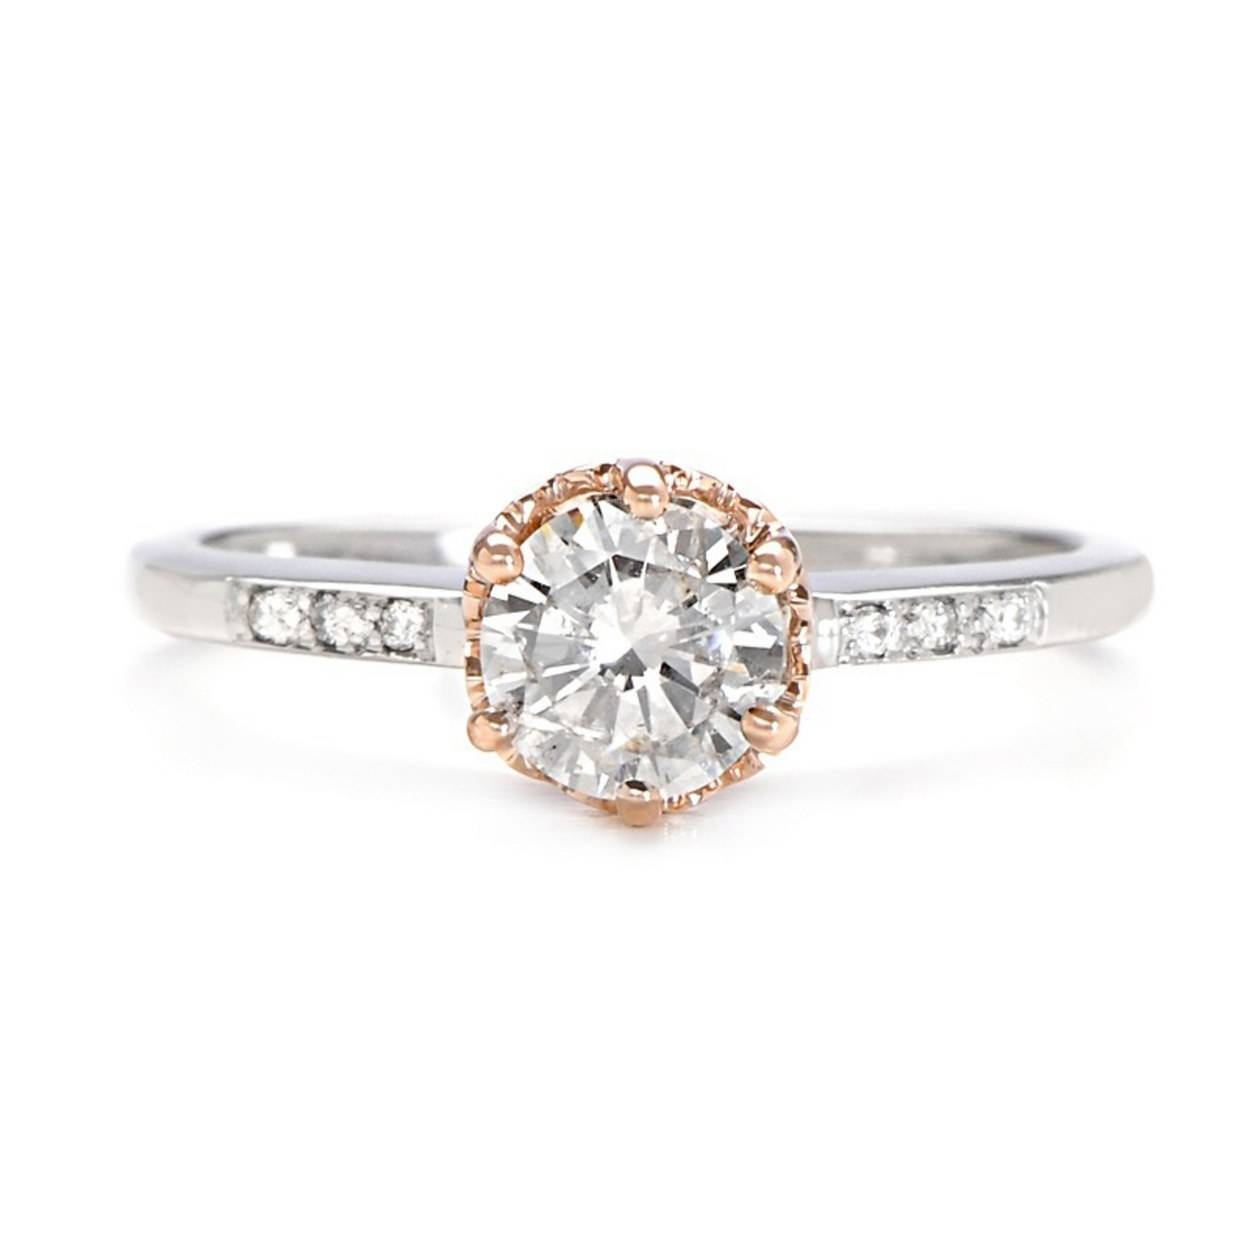 62 Diamond Engagement Rings Under $5,000 | Glamour Pertaining To Pink Diamond White Gold Engagement Rings (View 15 of 15)